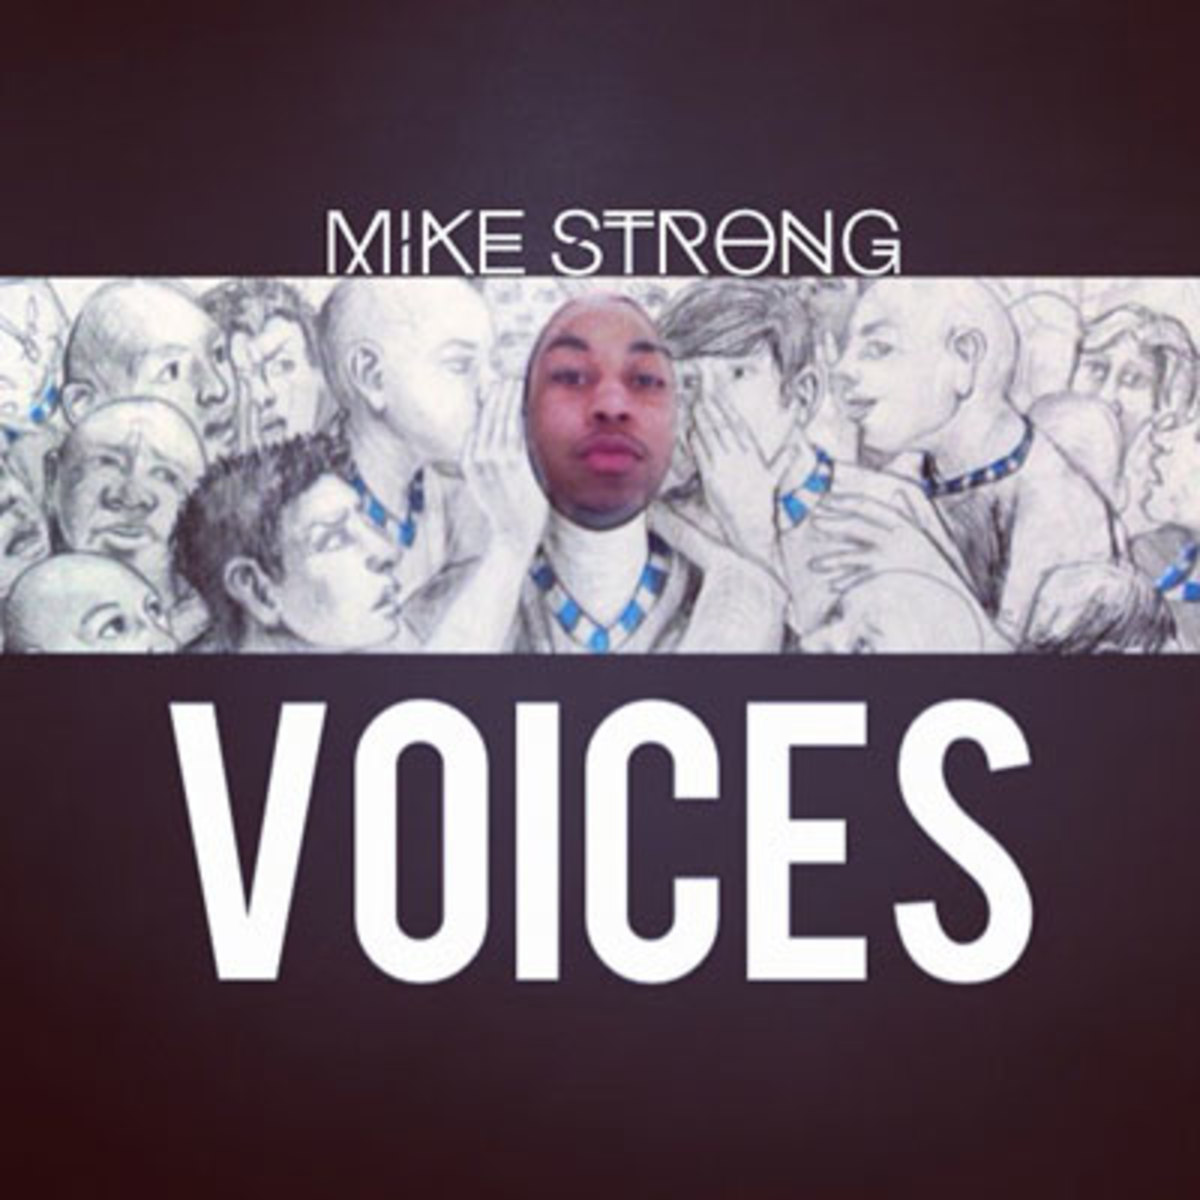 mikestrong-voices.jpg